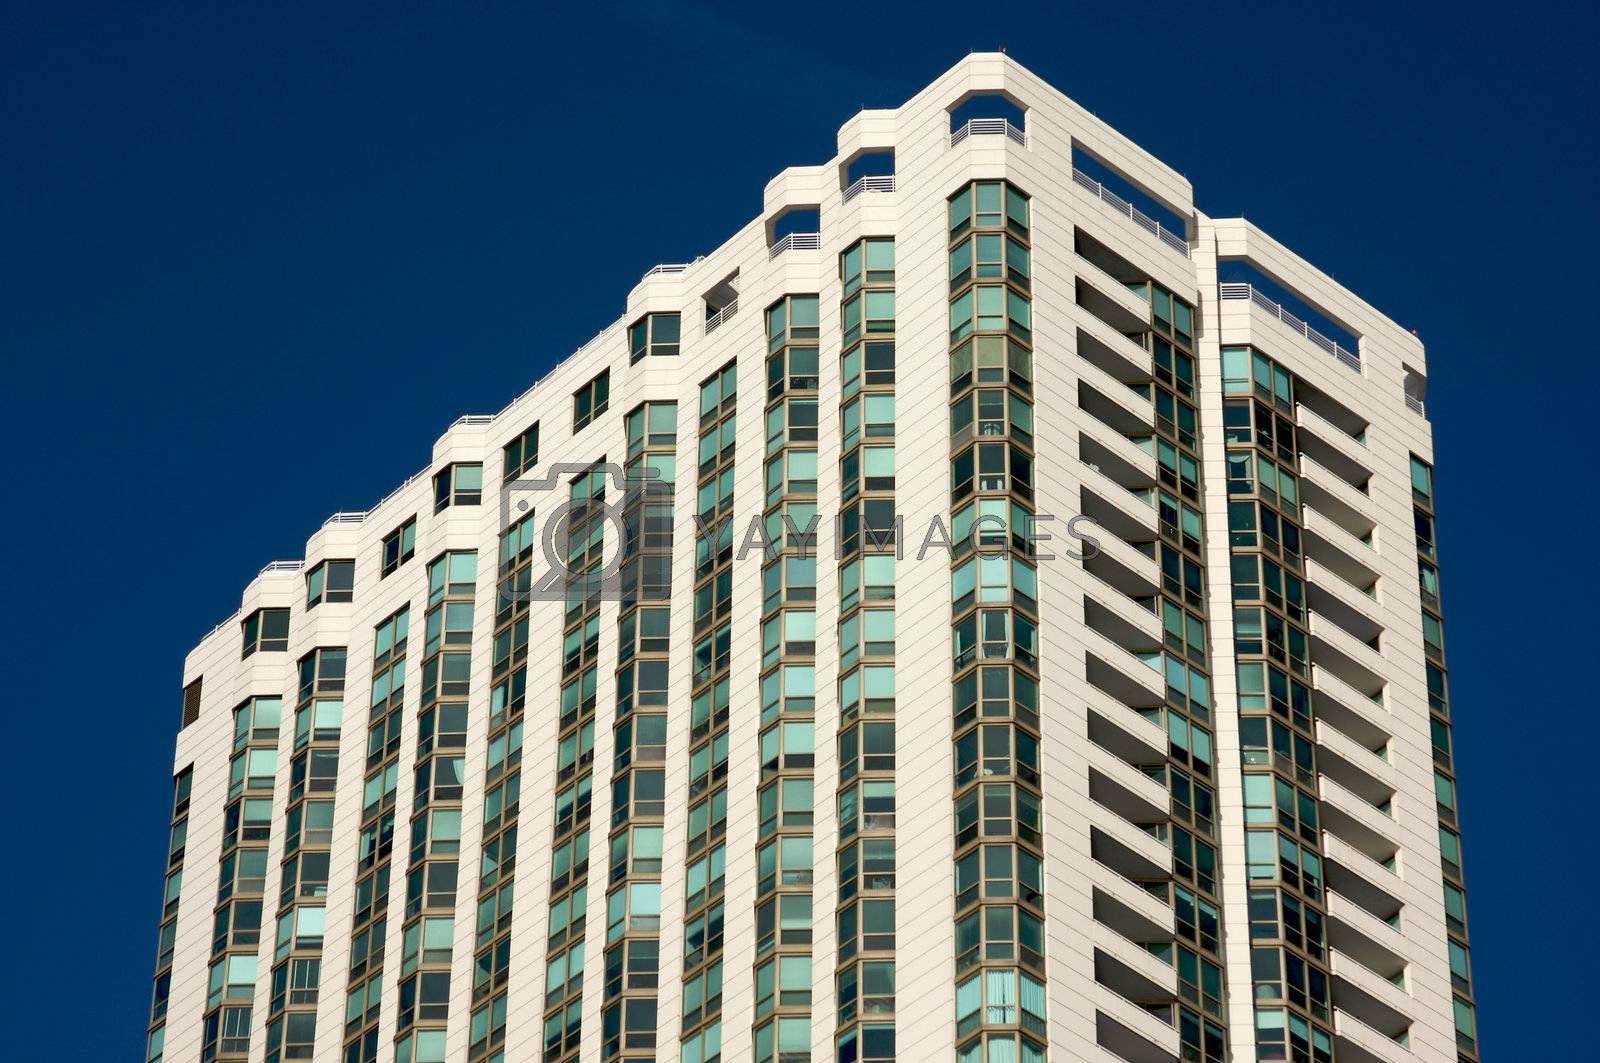 Modern High-Rise Condominiums in downtown Chicago.